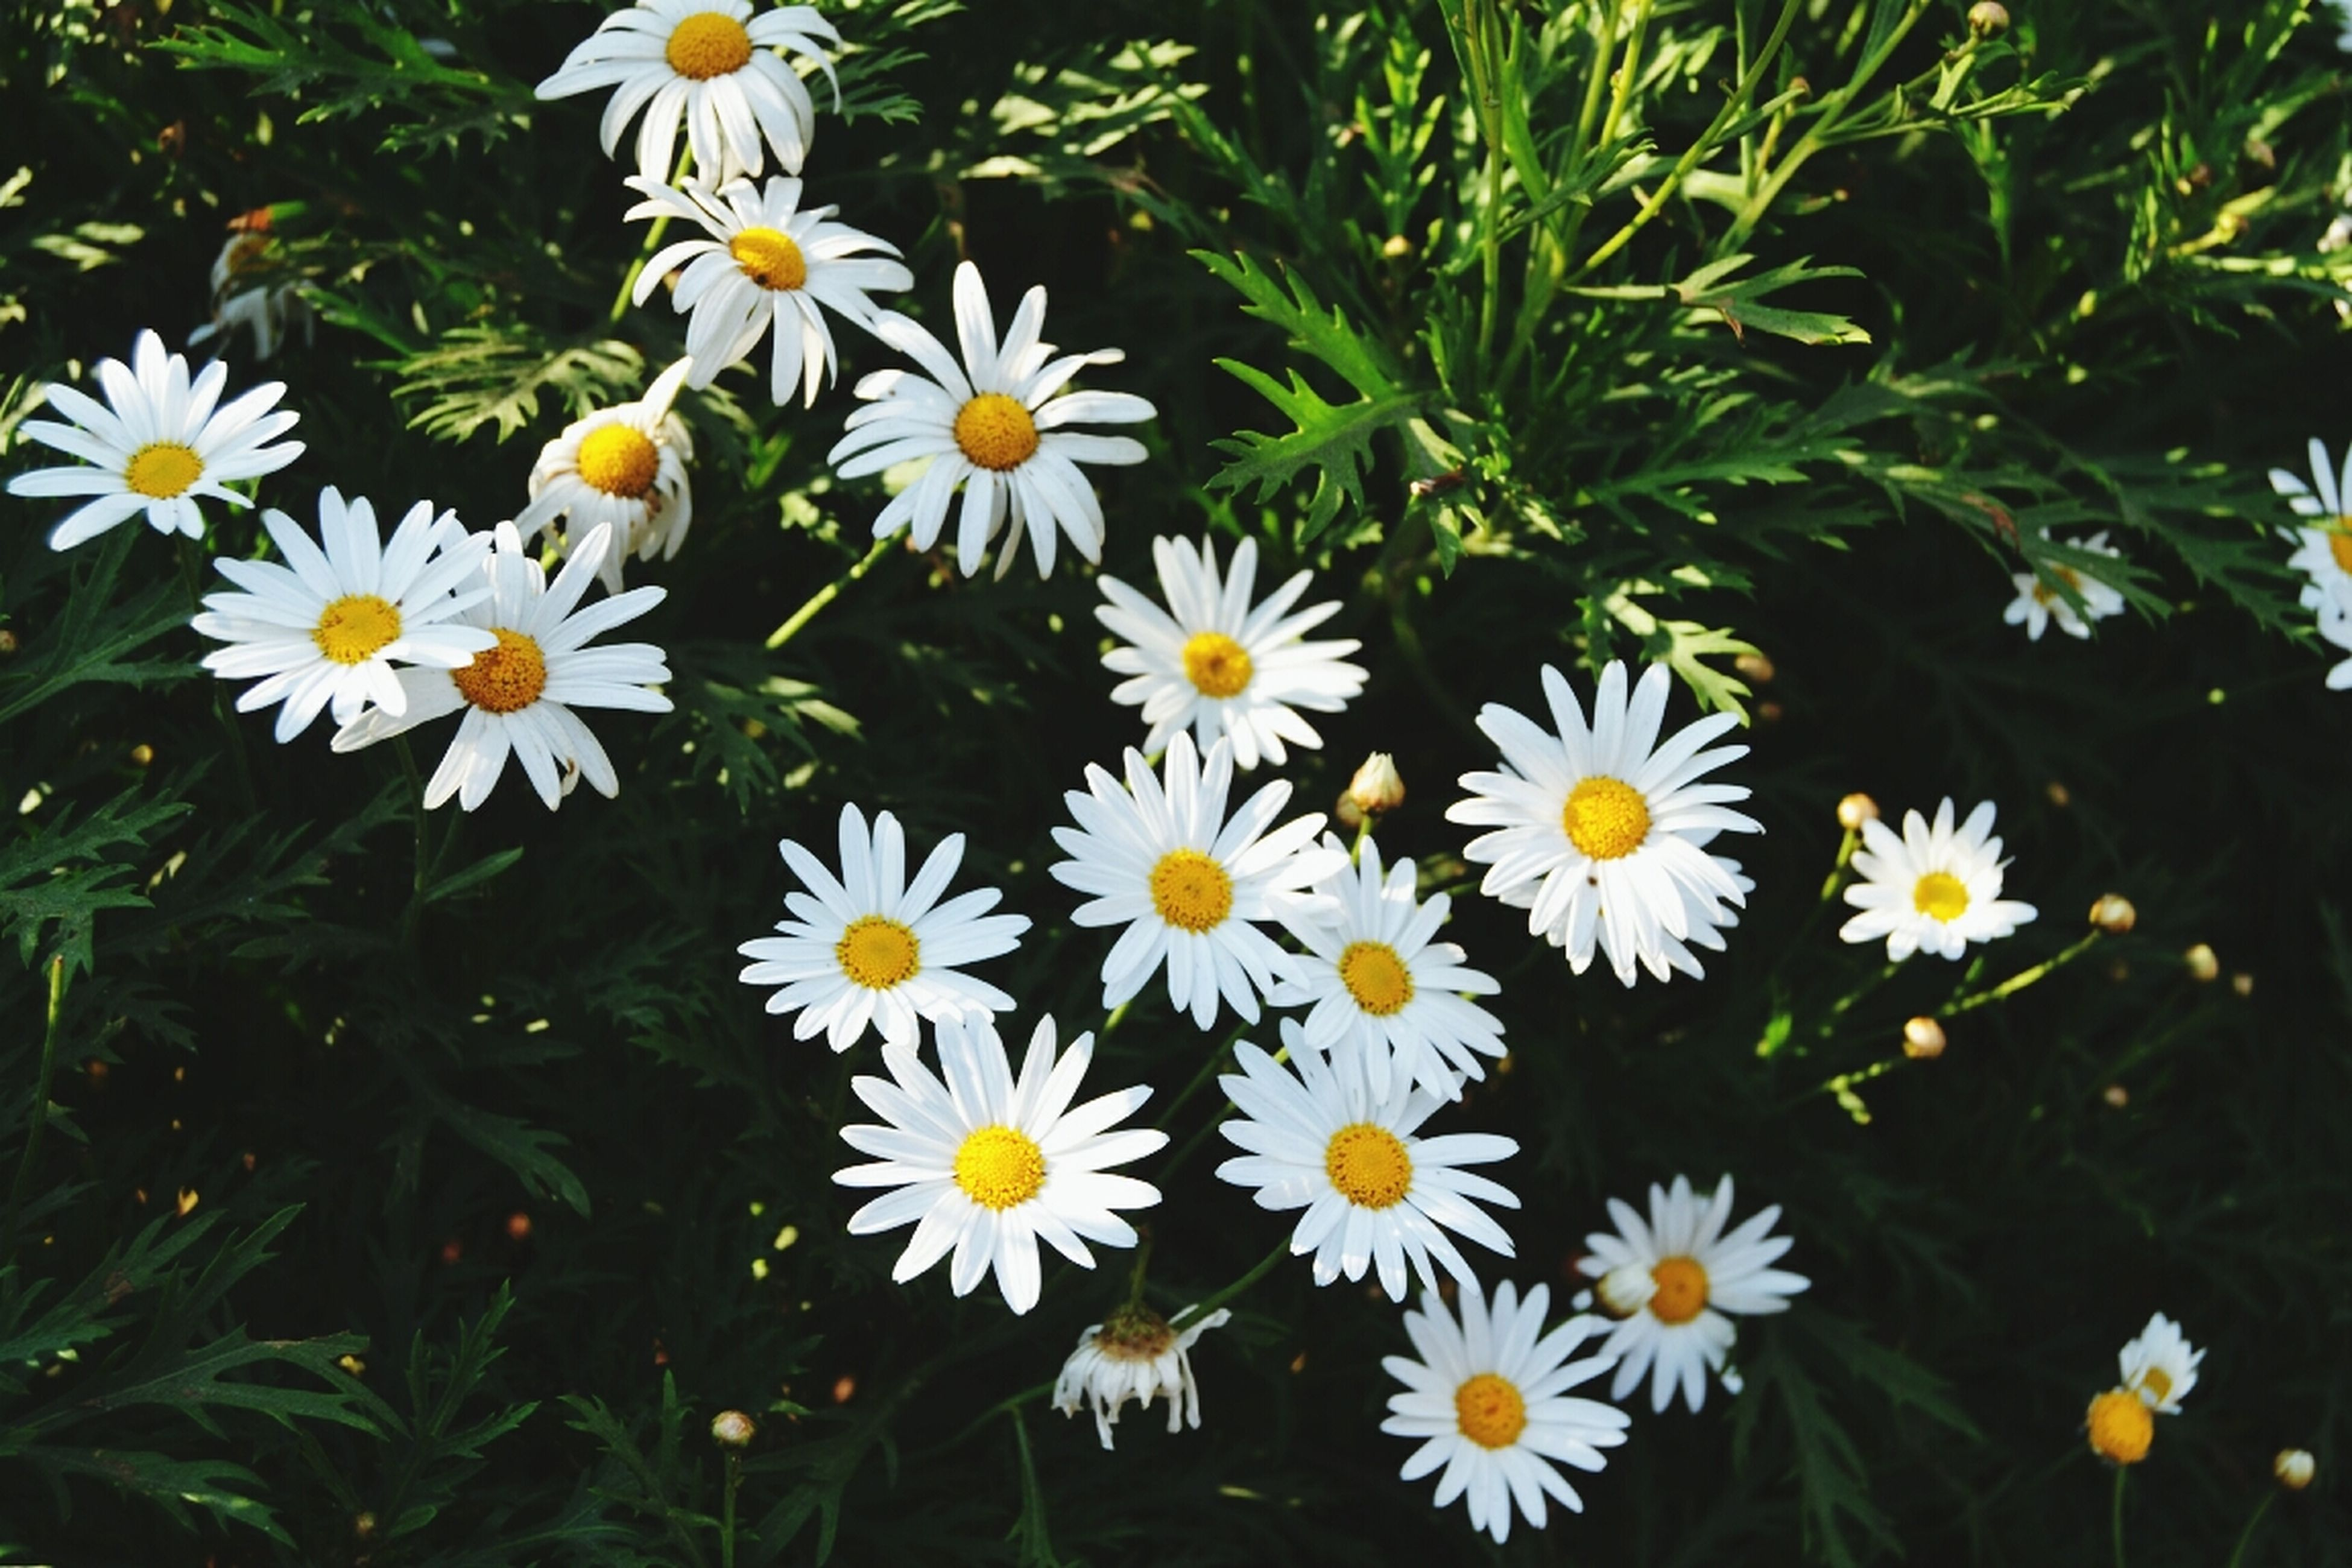 flower, freshness, petal, fragility, daisy, growth, white color, flower head, beauty in nature, blooming, plant, high angle view, nature, yellow, field, pollen, in bloom, green color, wildflower, close-up